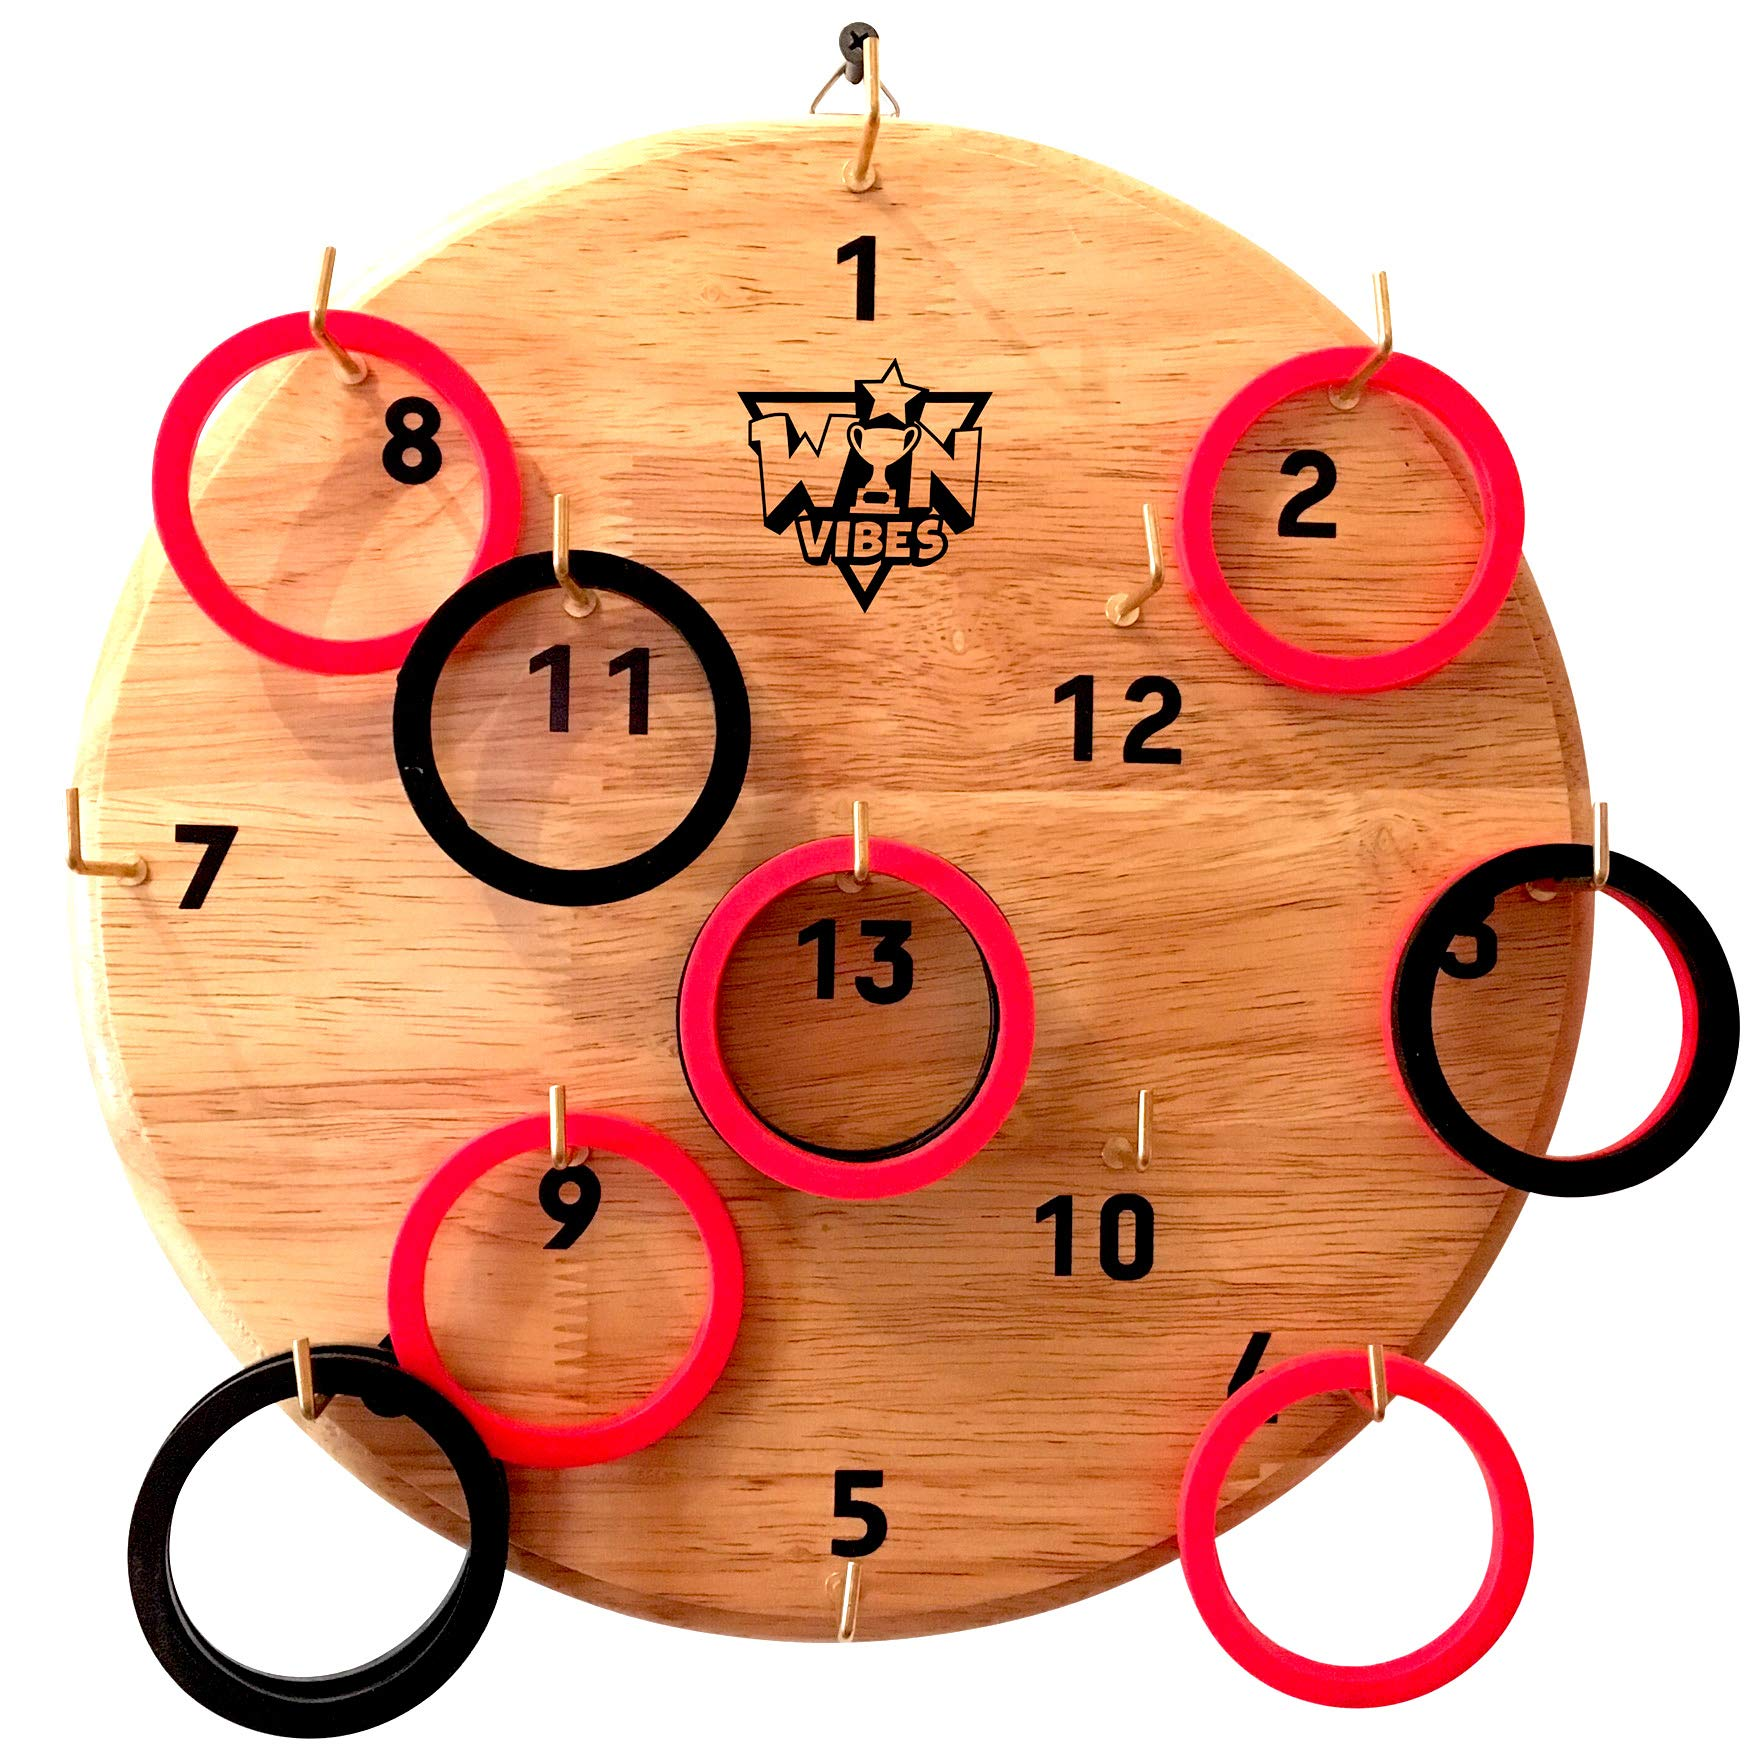 Hookey Ring Toss Game Set by Win Vibes - Solid Wooden Board - Birthday Idea for Adults Men Dad or Mom and for Kids Boys or Girls - Fun Toy For Party and Family Outdoor or Indoor Play by Win Vibes